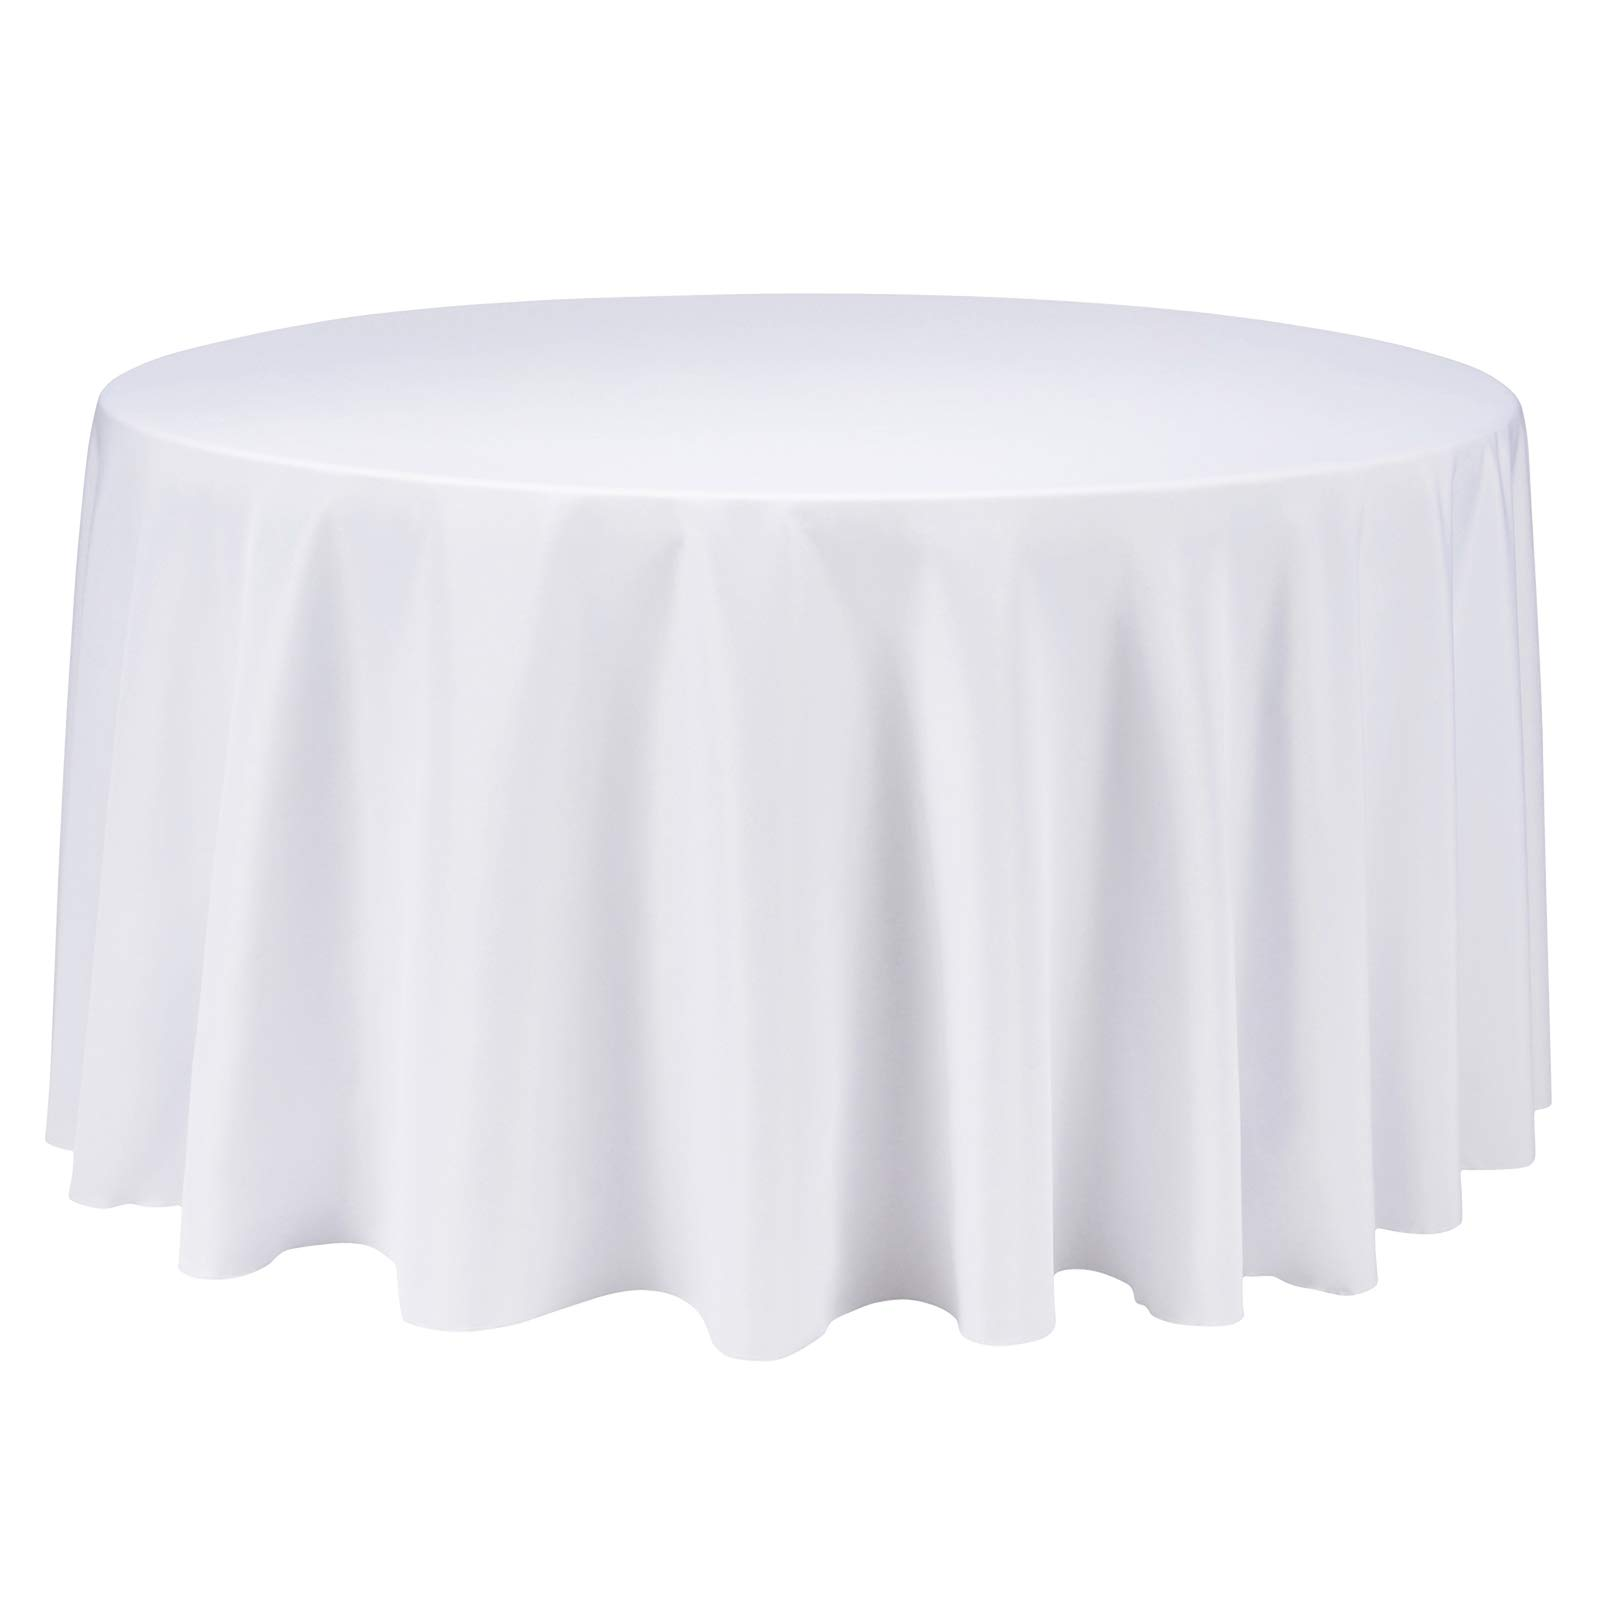 VEEYOO 120 inch Round Solid Polyester Tablecloth for Wedding Restaurant Party Bridal Shower Kitchen Decoration Washable, White